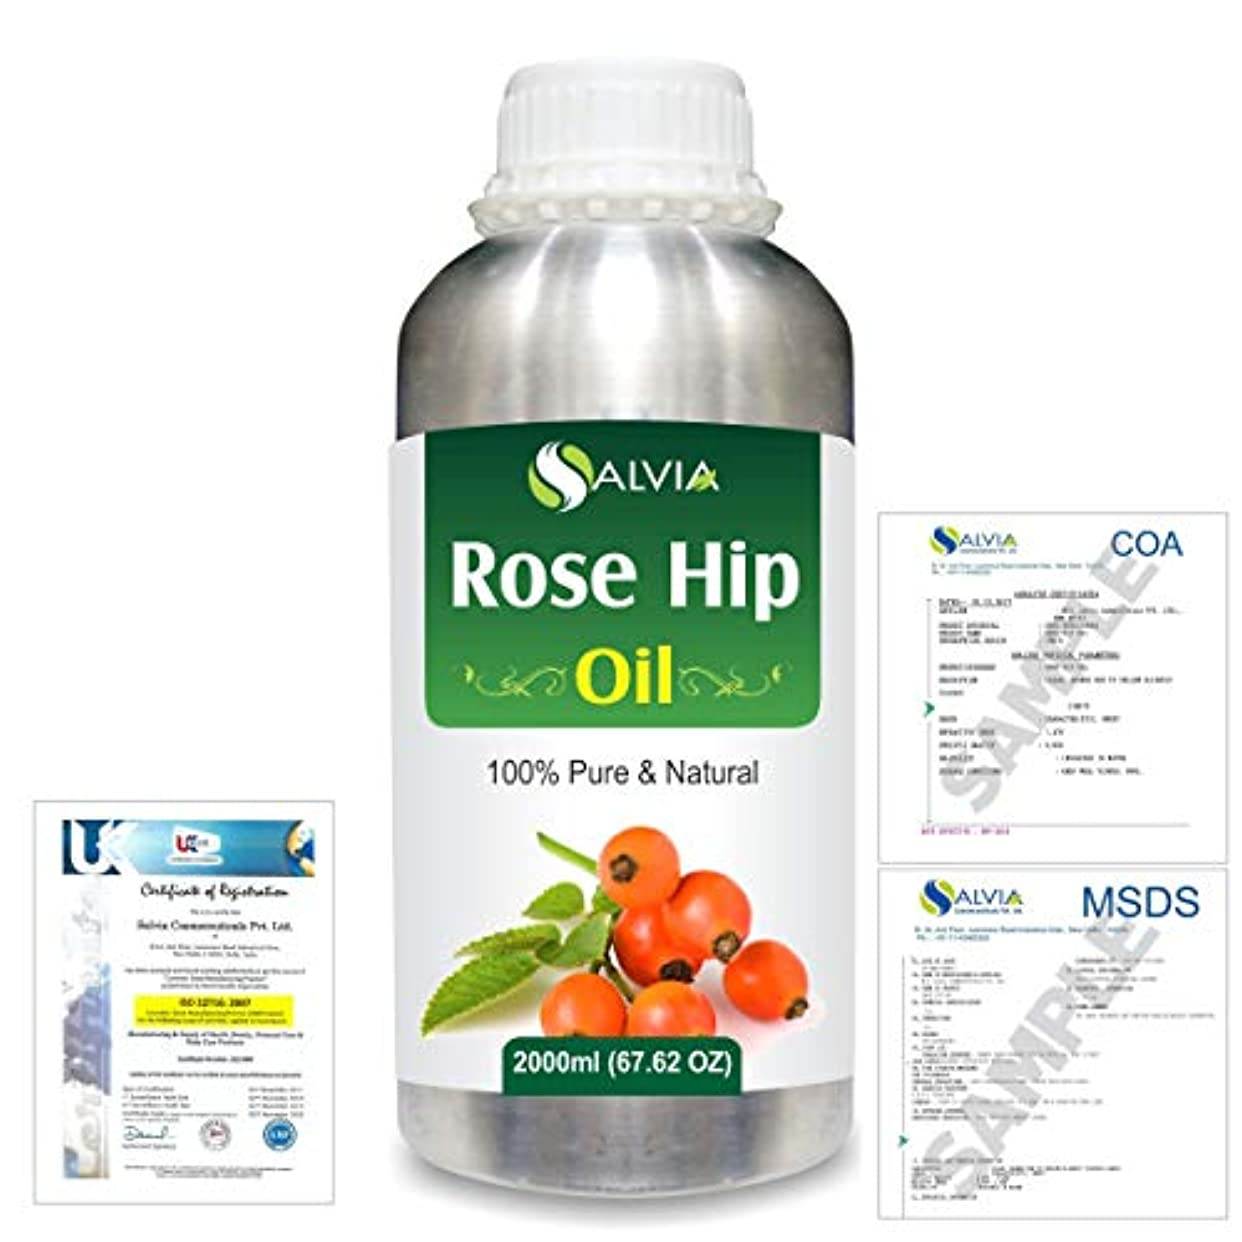 バーマド高潔なコストRose Hip (Rosa moschata) Natural Pure Undiluted Uncut Carrier Oil 2000ml/67 fl.oz.